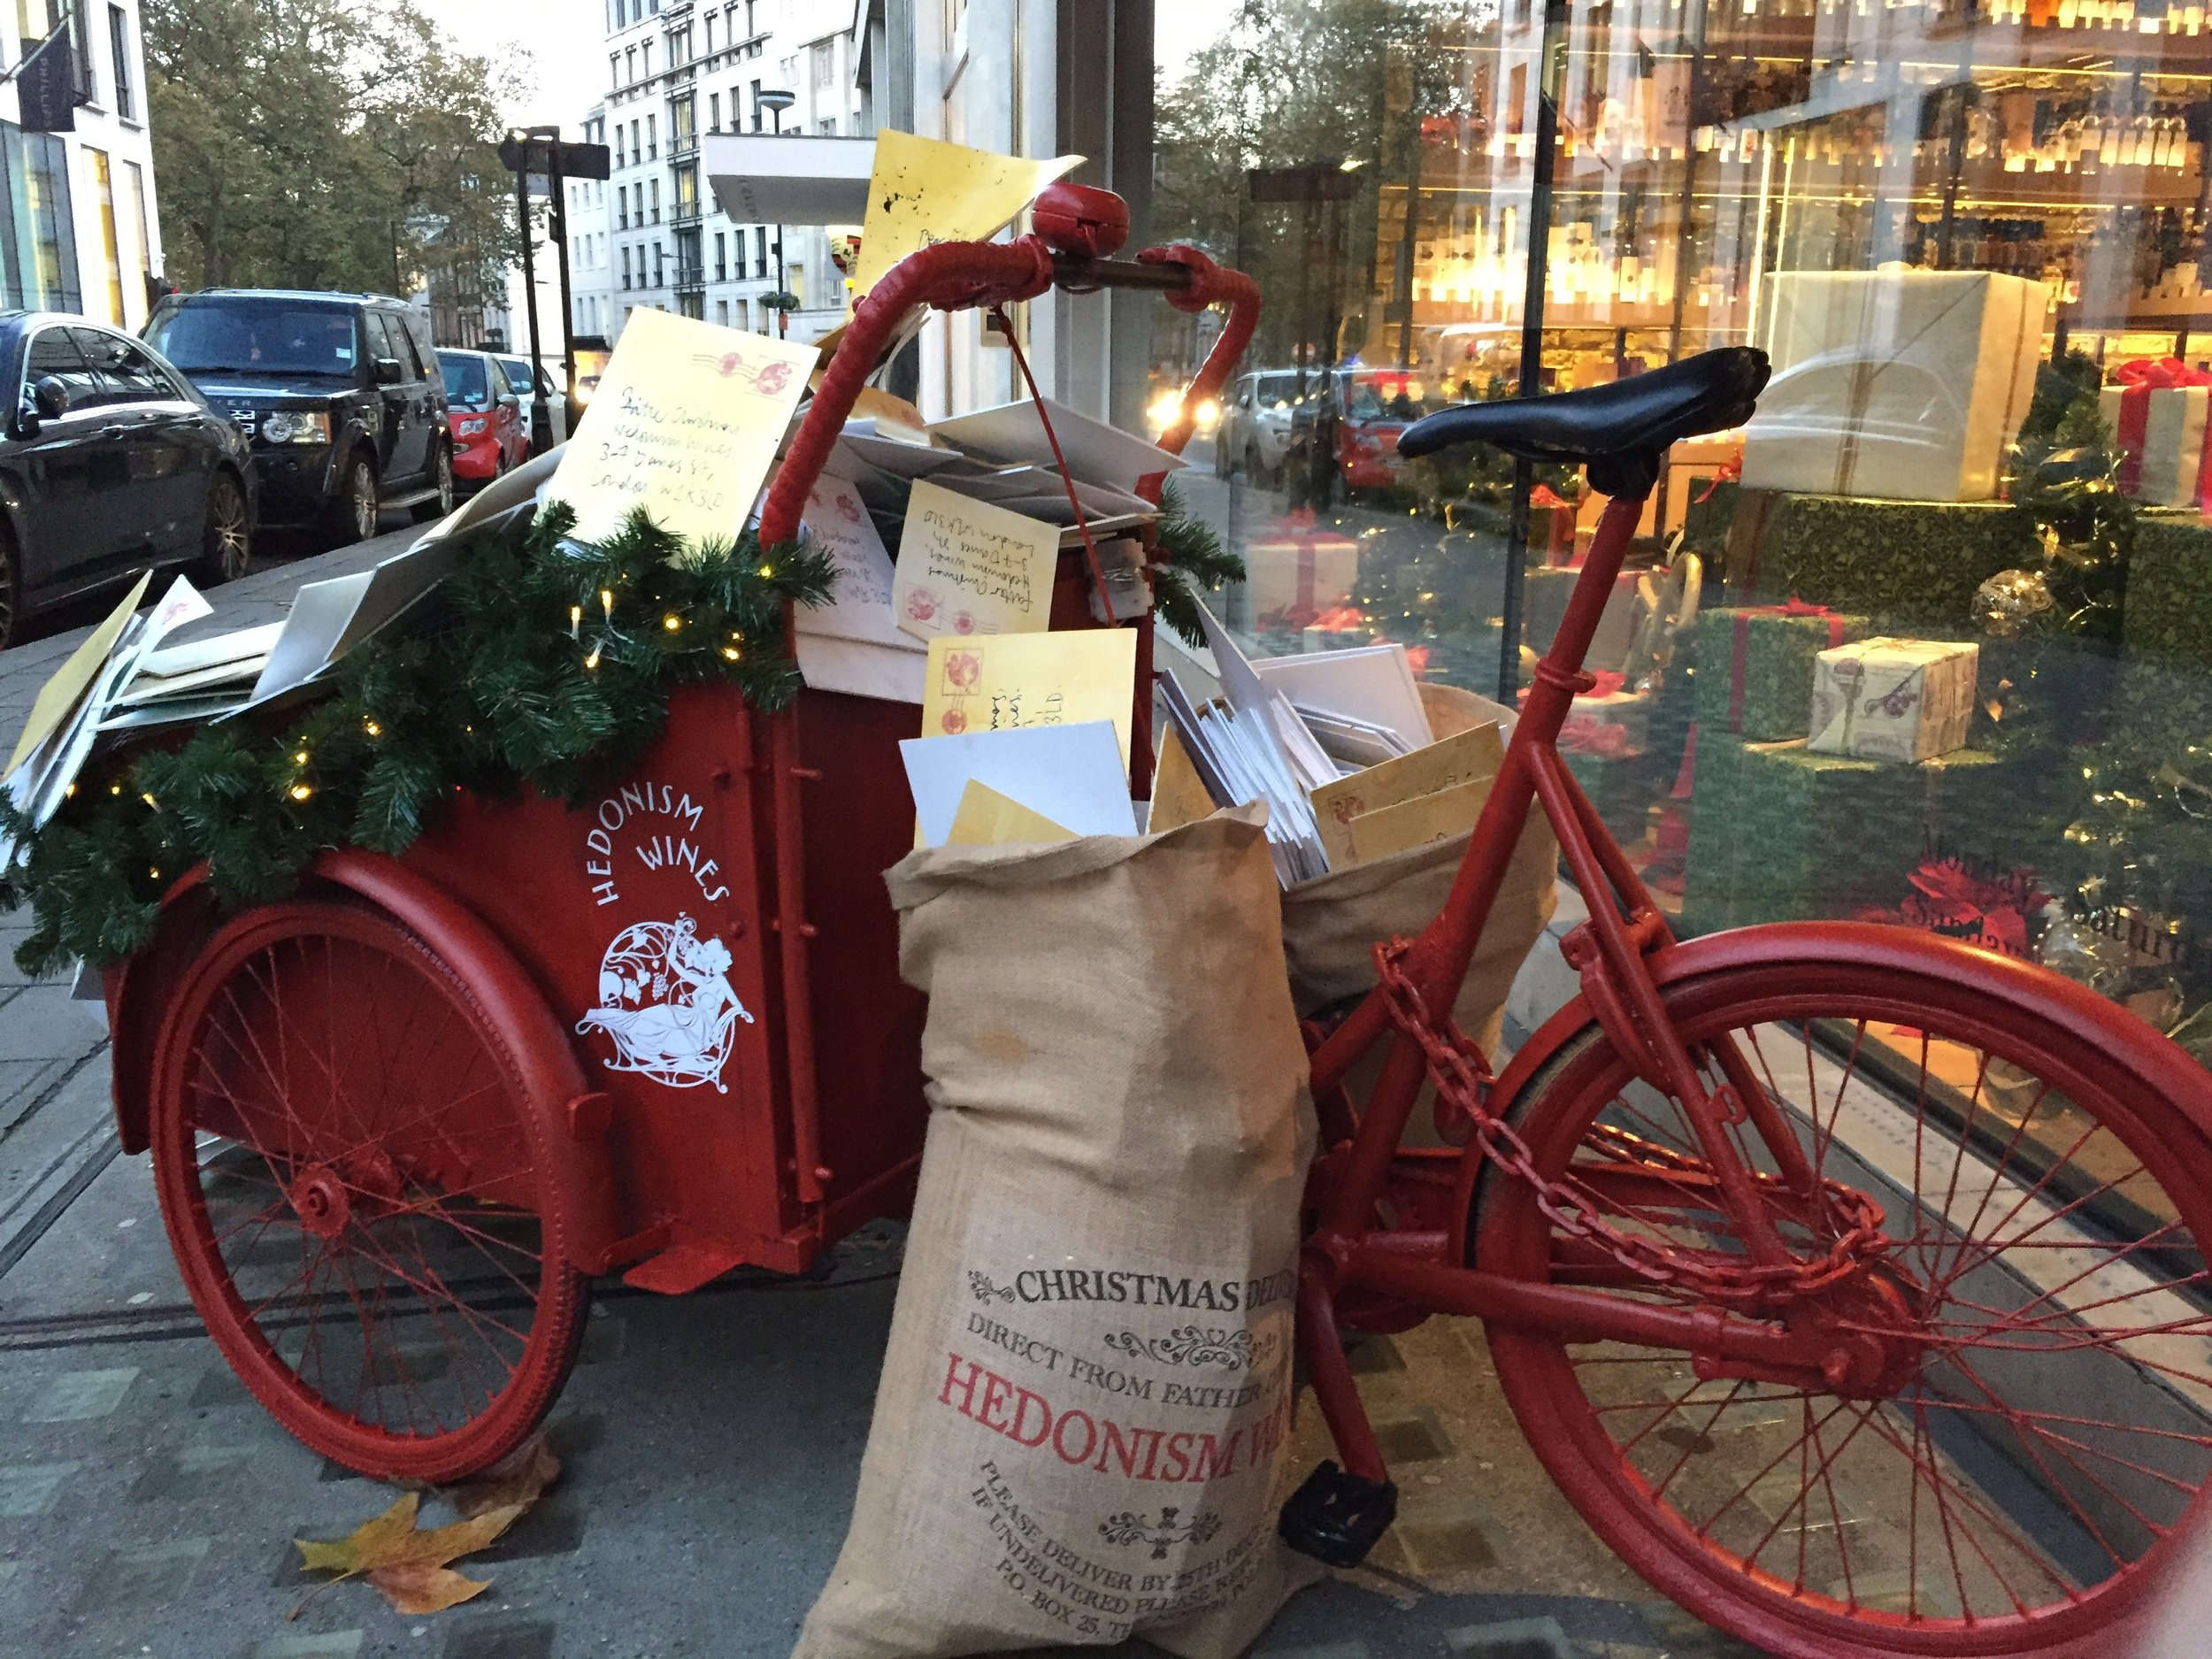 hedonism-wines-xmas-window-delivery